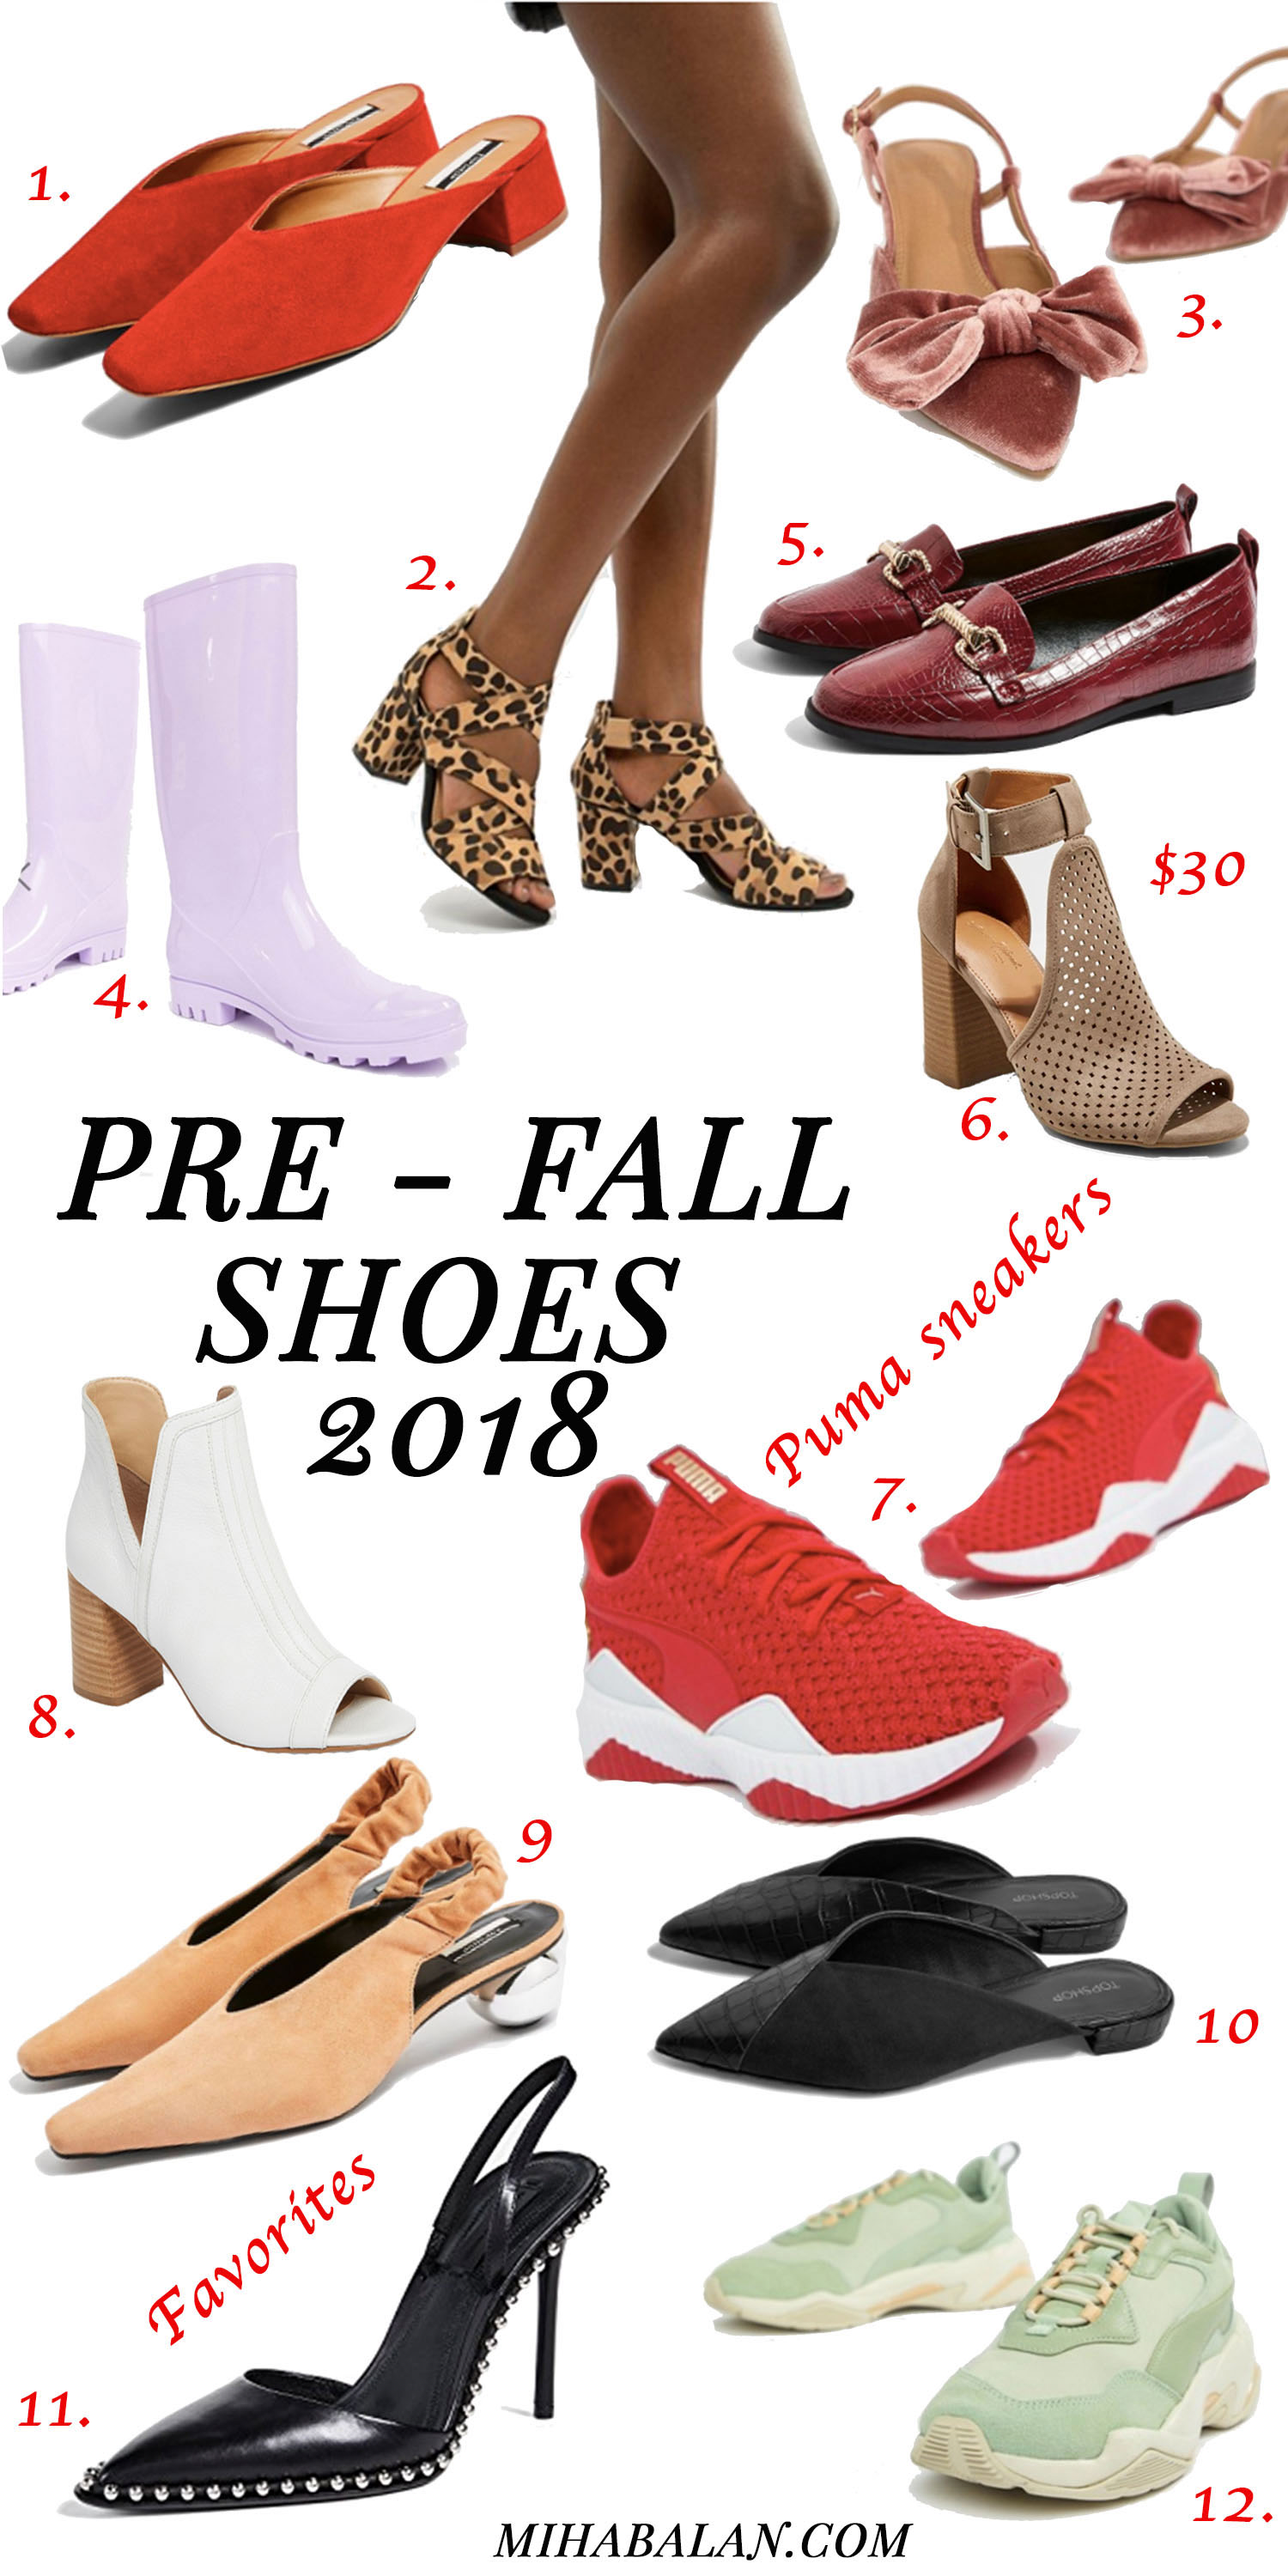 Pre - Fall shoes, fall shoes, woman shoes, shoes to wear fall 2018